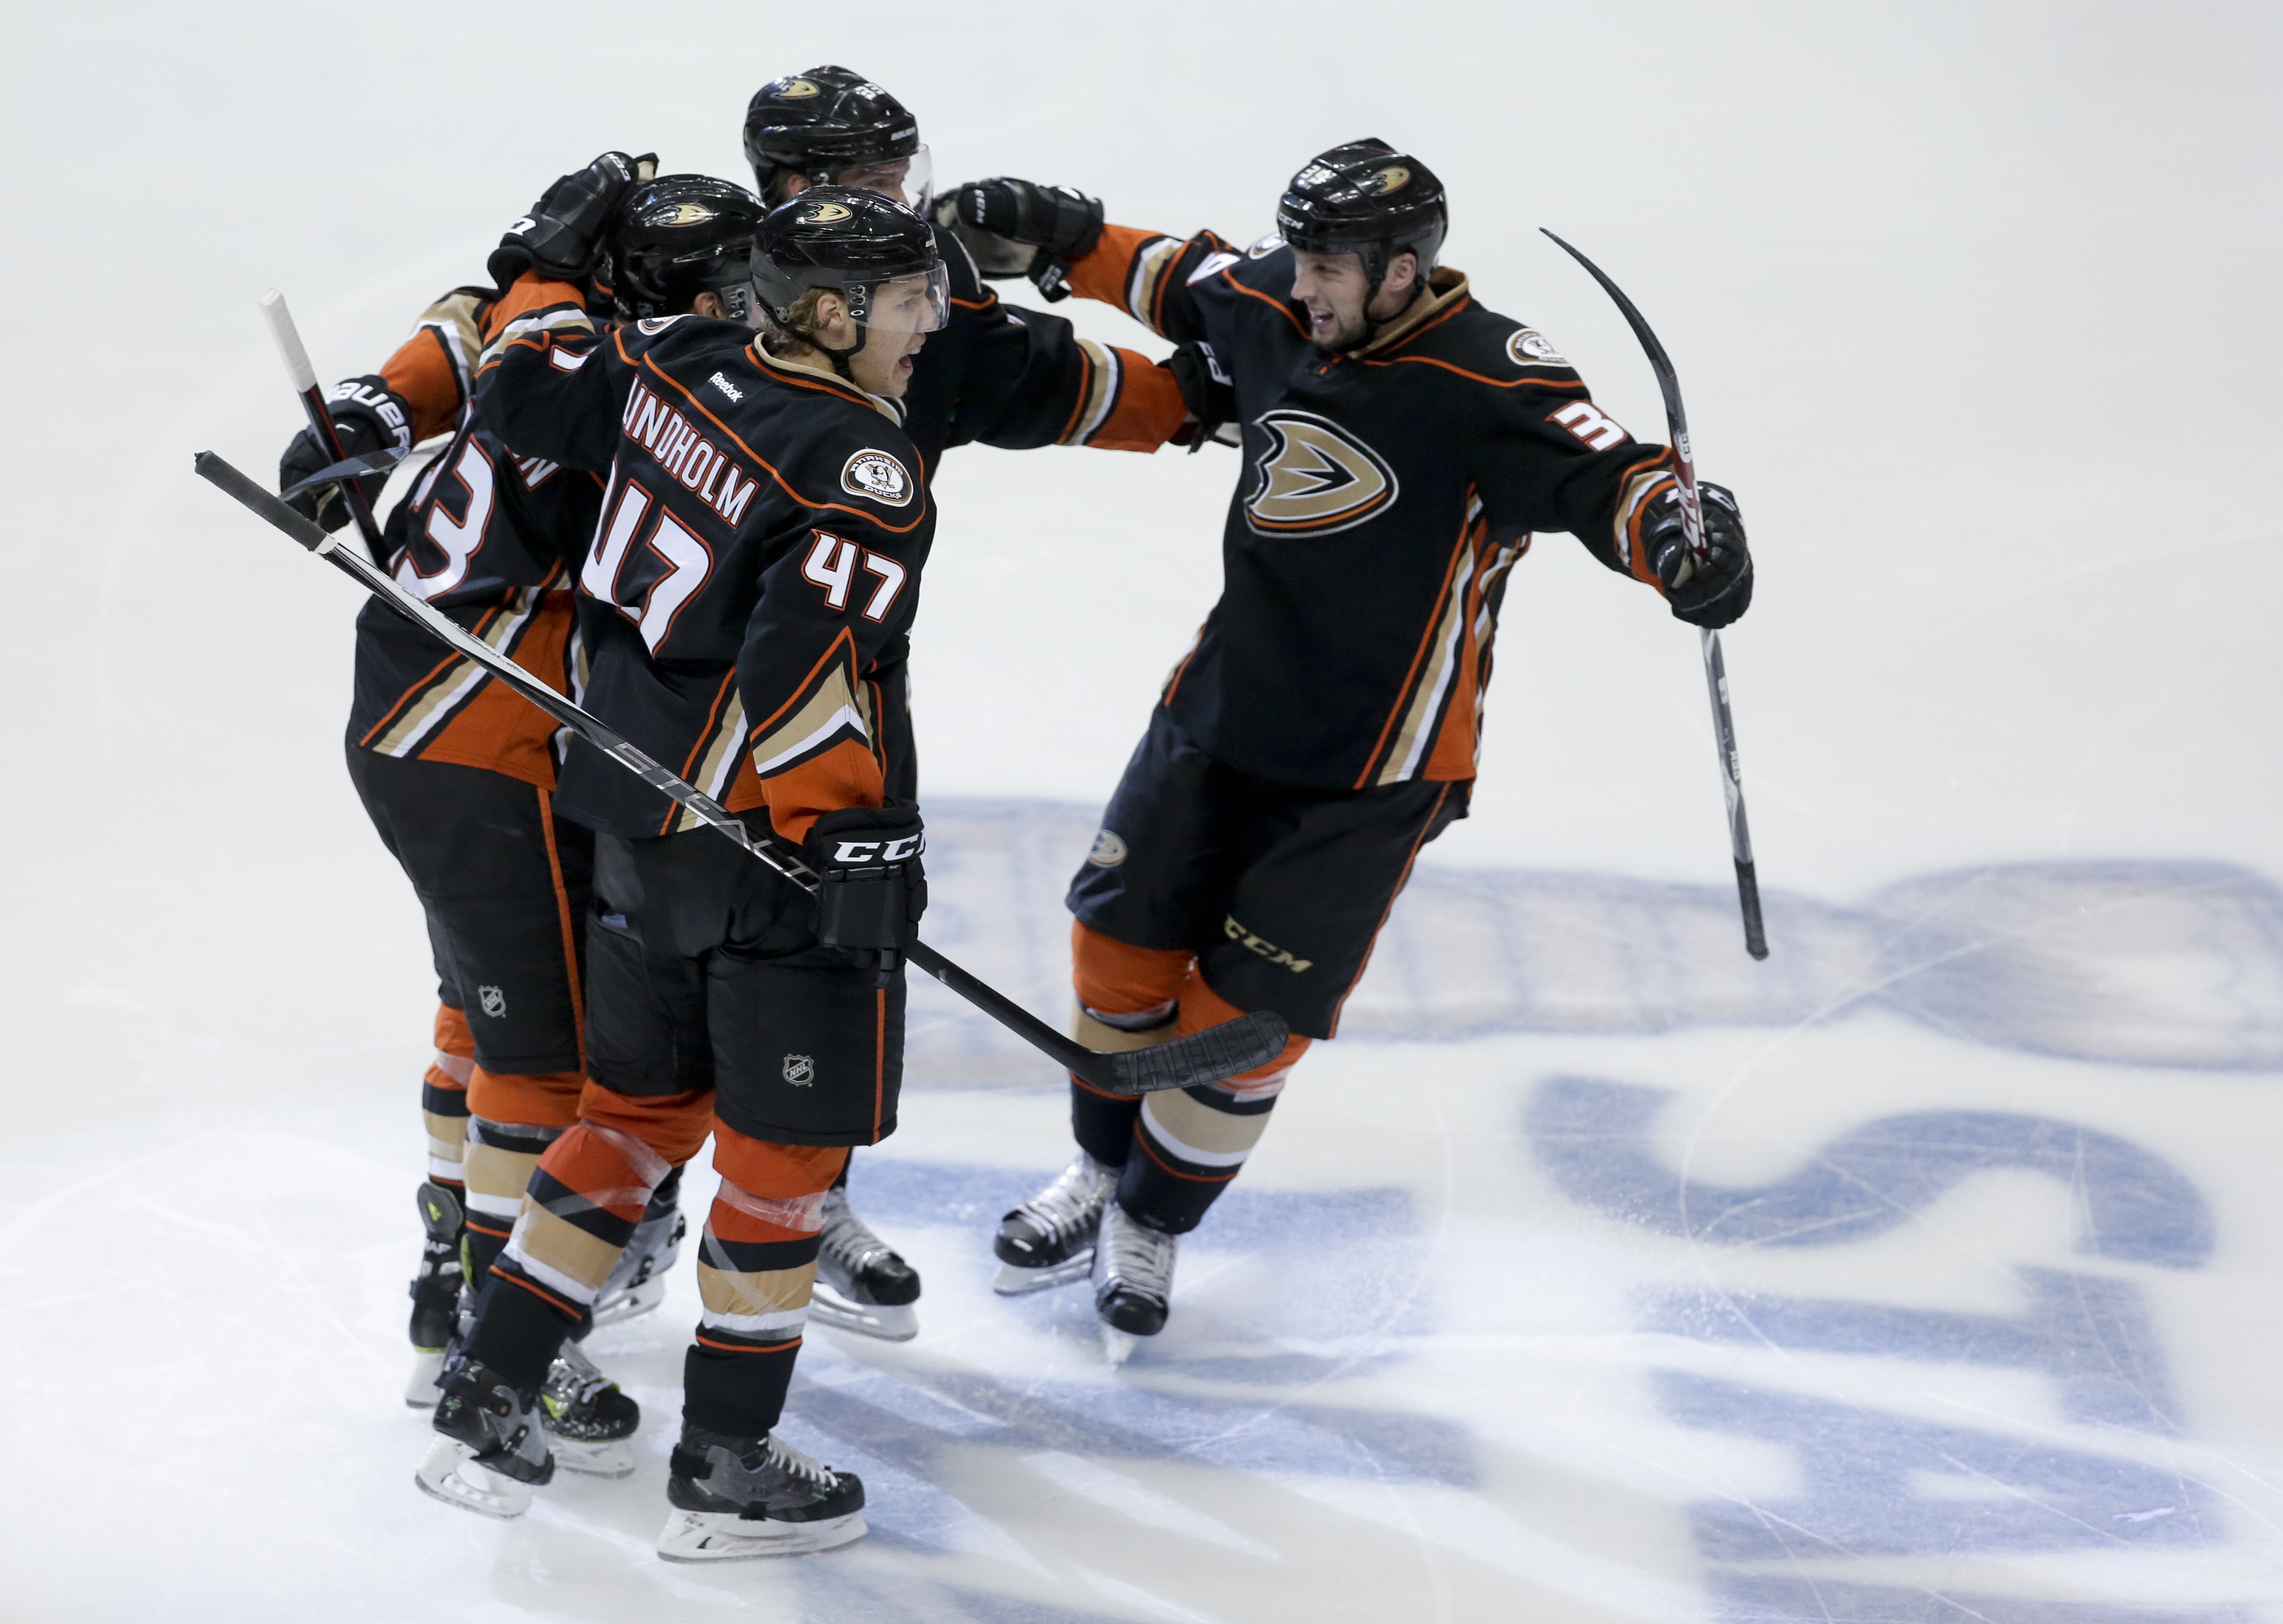 Members of the Anaheim Ducks celebrate Matt Beleskey's goal during the third period of Game 5 in an NHL hockey second-round playoff series against the Calgary Flames in Anaheim, Calif., Sunday, May 10, 2015. (AP Photo/Chris Carlson)